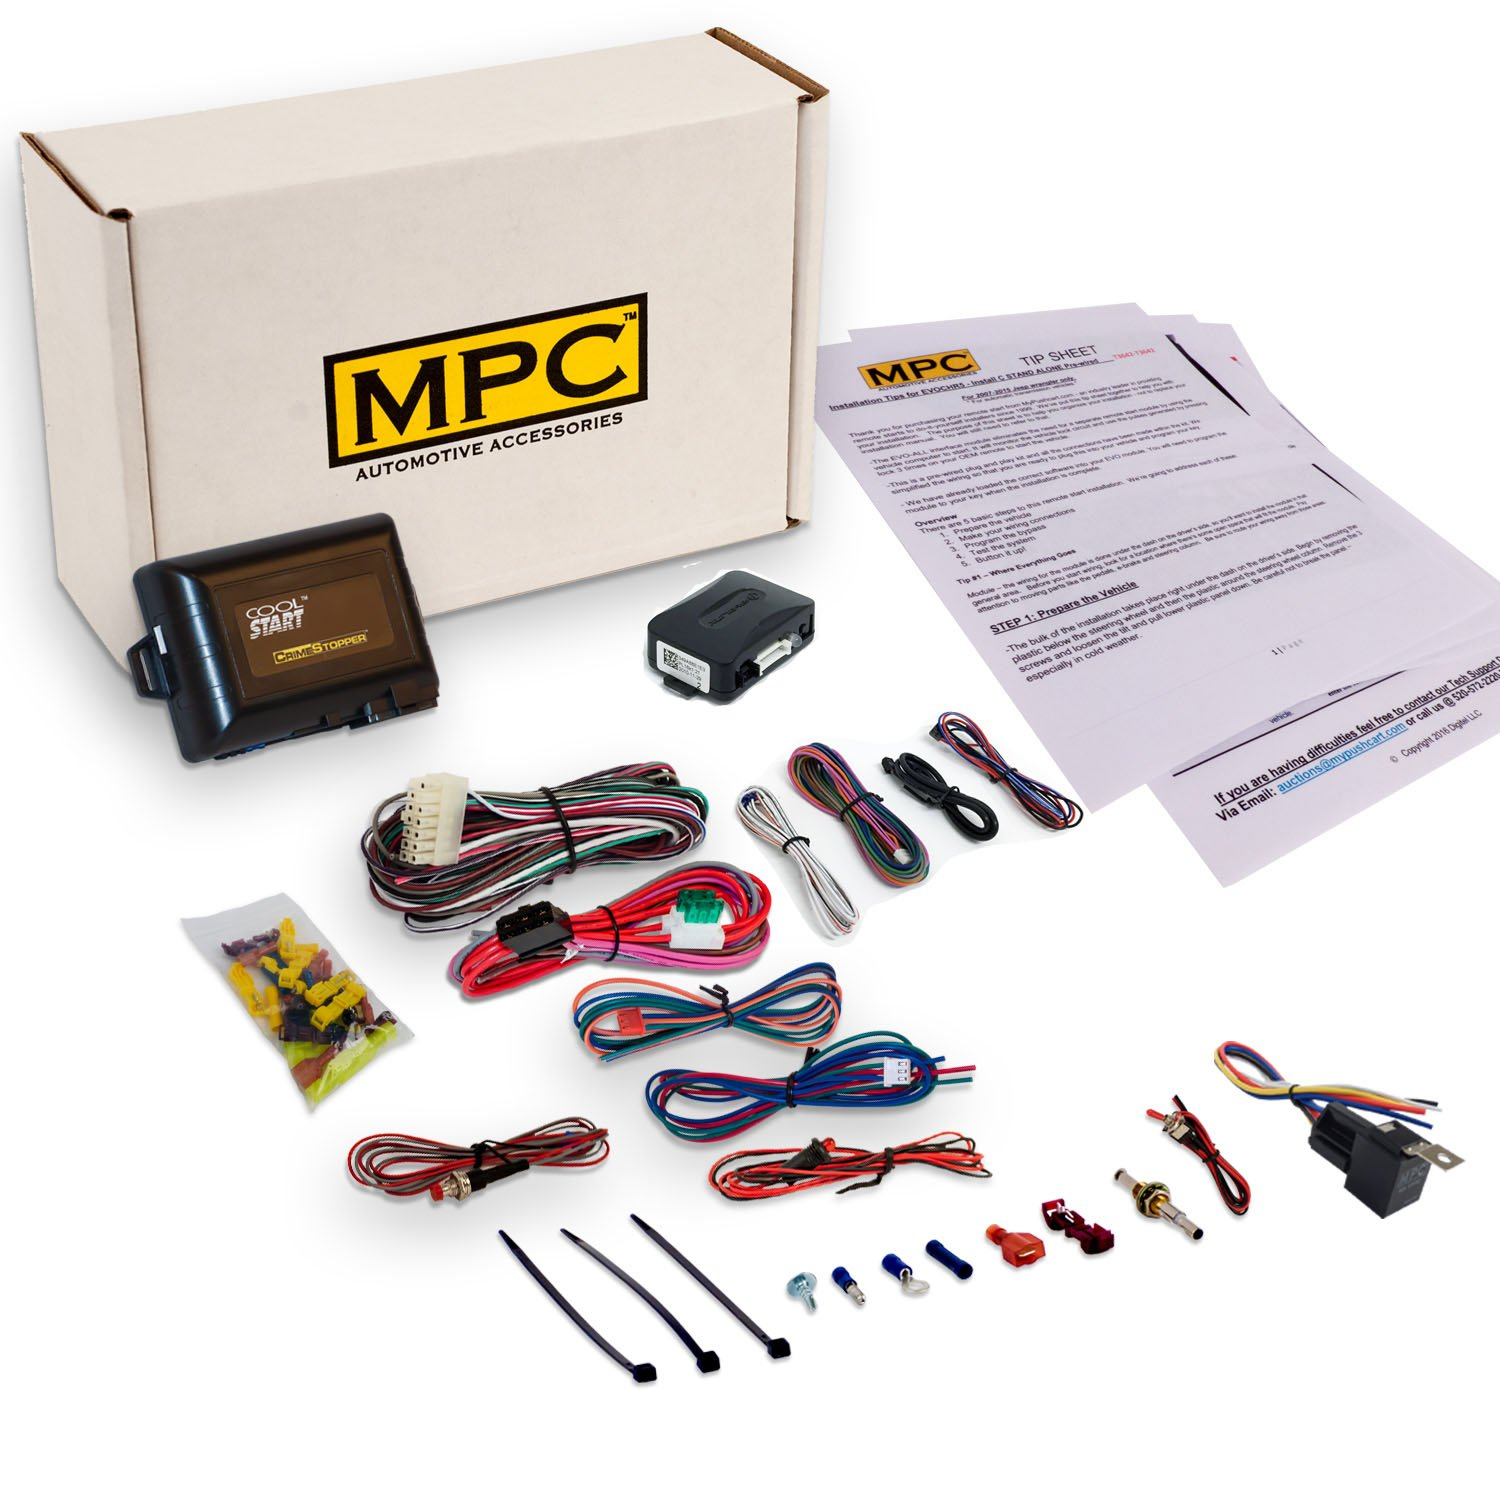 Amazon.com: MPC Complete Remote Start Kit for Select GM Vehicles  [1998-2007]: Chevrolet, GMC & Pontiac - Use Your OEM Key Fobs!: Automotive